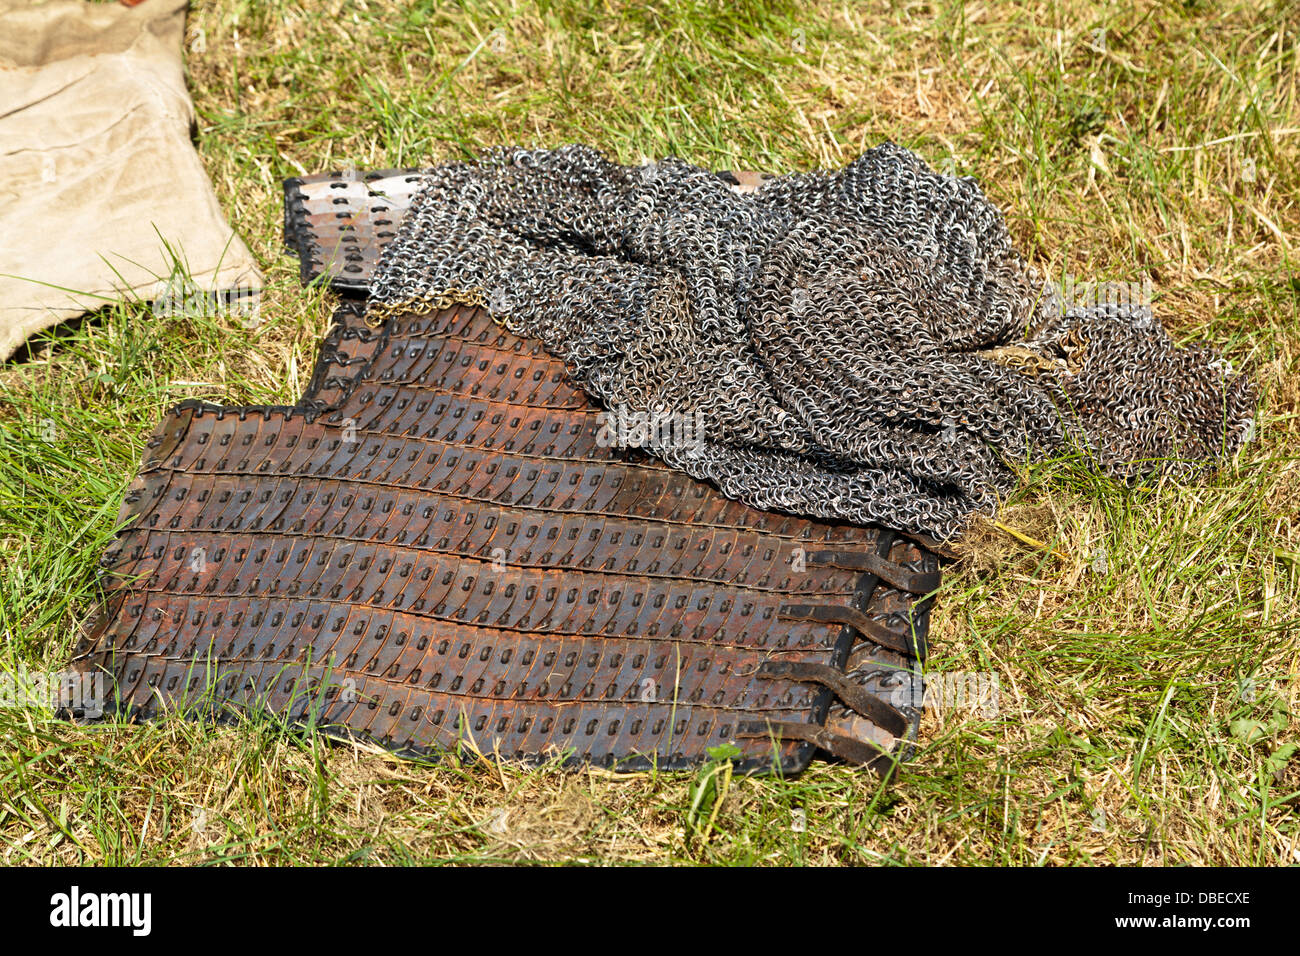 Viking chainmail armor at Flag Fen Archaeological Park, Peterborough, England - Stock Image